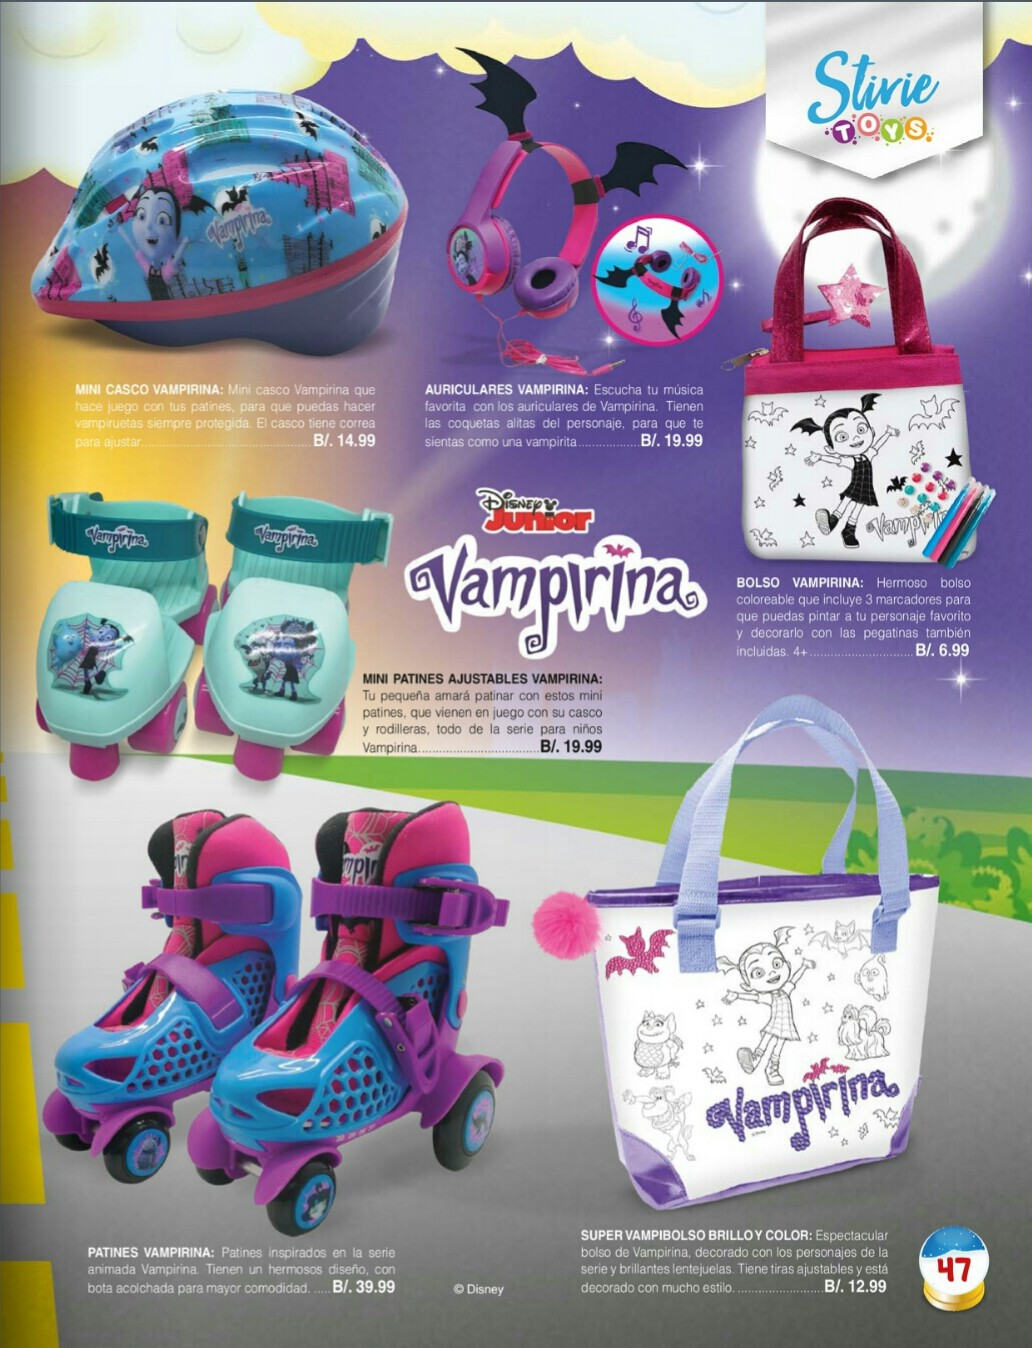 Catalogo juguetes Stivie toys 2018 p47